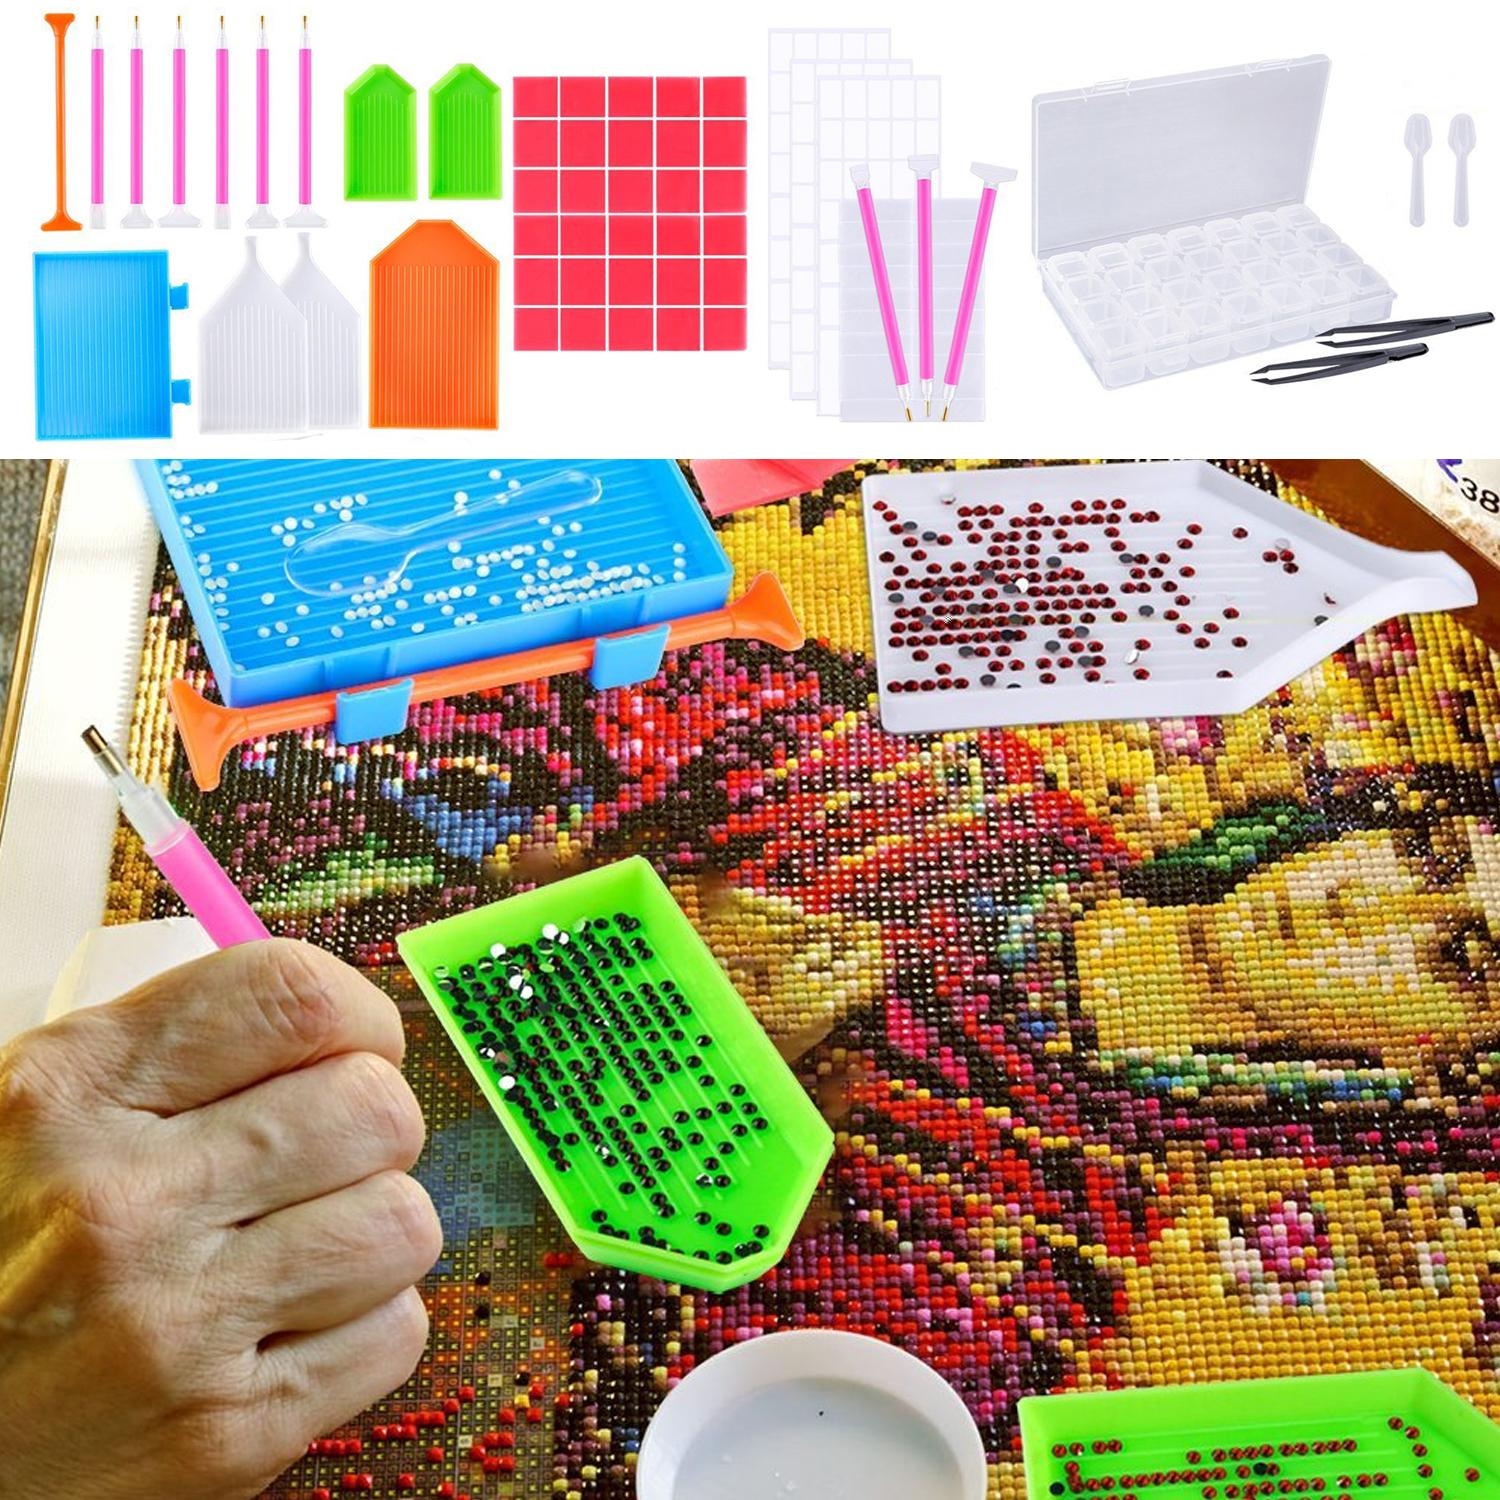 56pcs Diy Diamond Painting Embroidery Tools Kit Including Sticky Pen Glue Spoon Plastic Plates Embroidery Box Tweezer Sticky Paper By Elek.